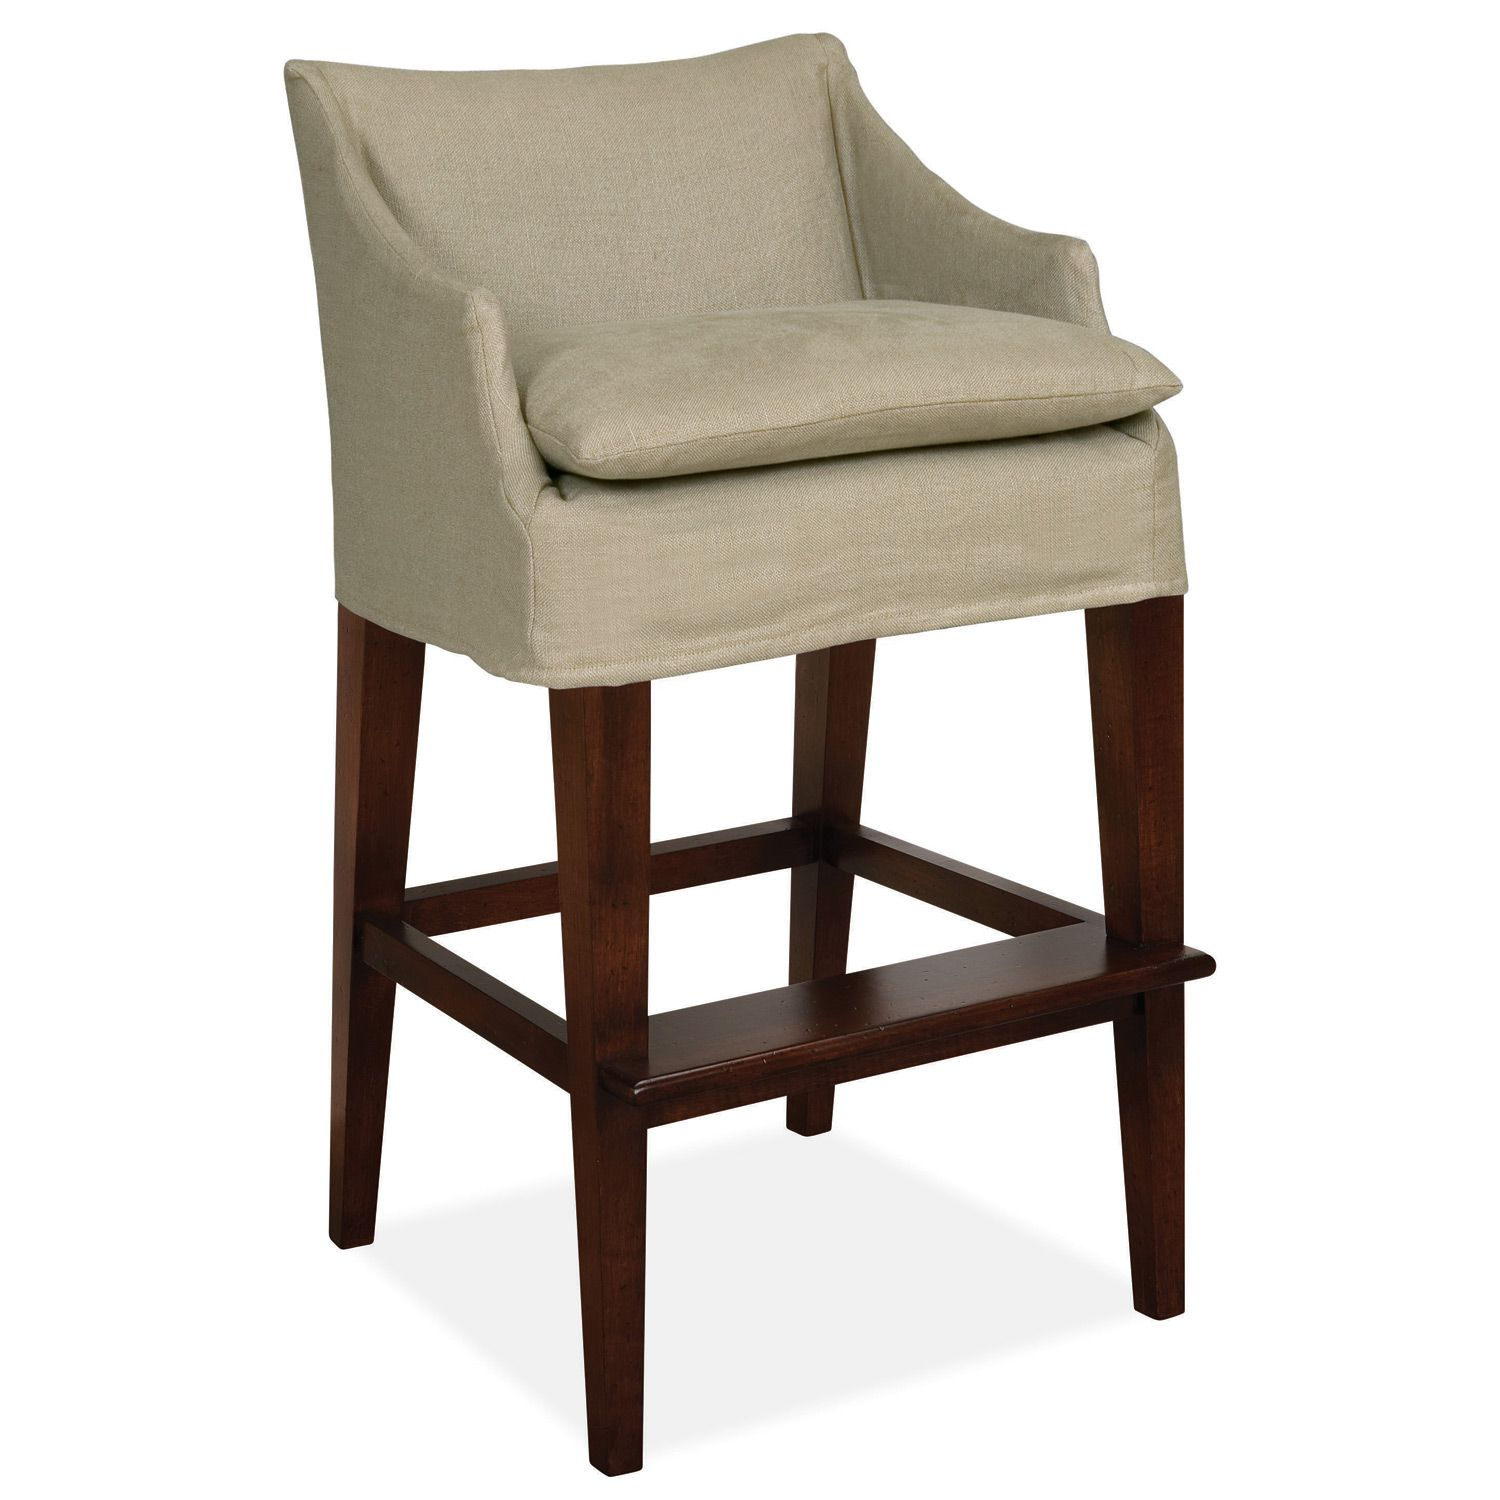 Counter Height Chair Slipcovers Round Kitchen Table With Caster Chairs Layla Grayce Normandy Slipcovered Campaign Bar Stool Laylagrayce